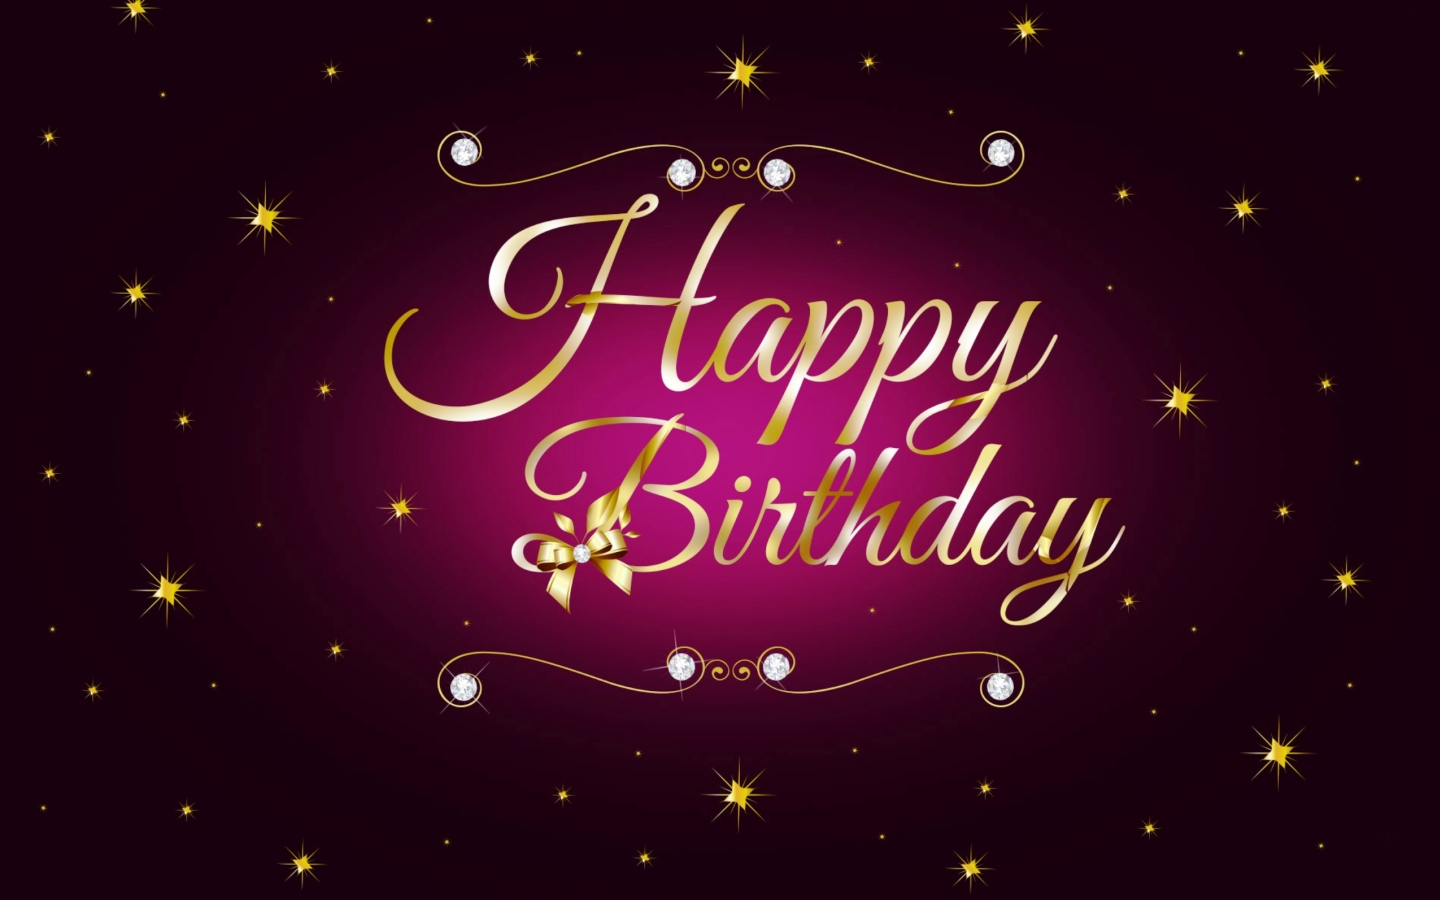 birthday wishes images free download ; happy-birthday-wishes-best-HD-wallpaper